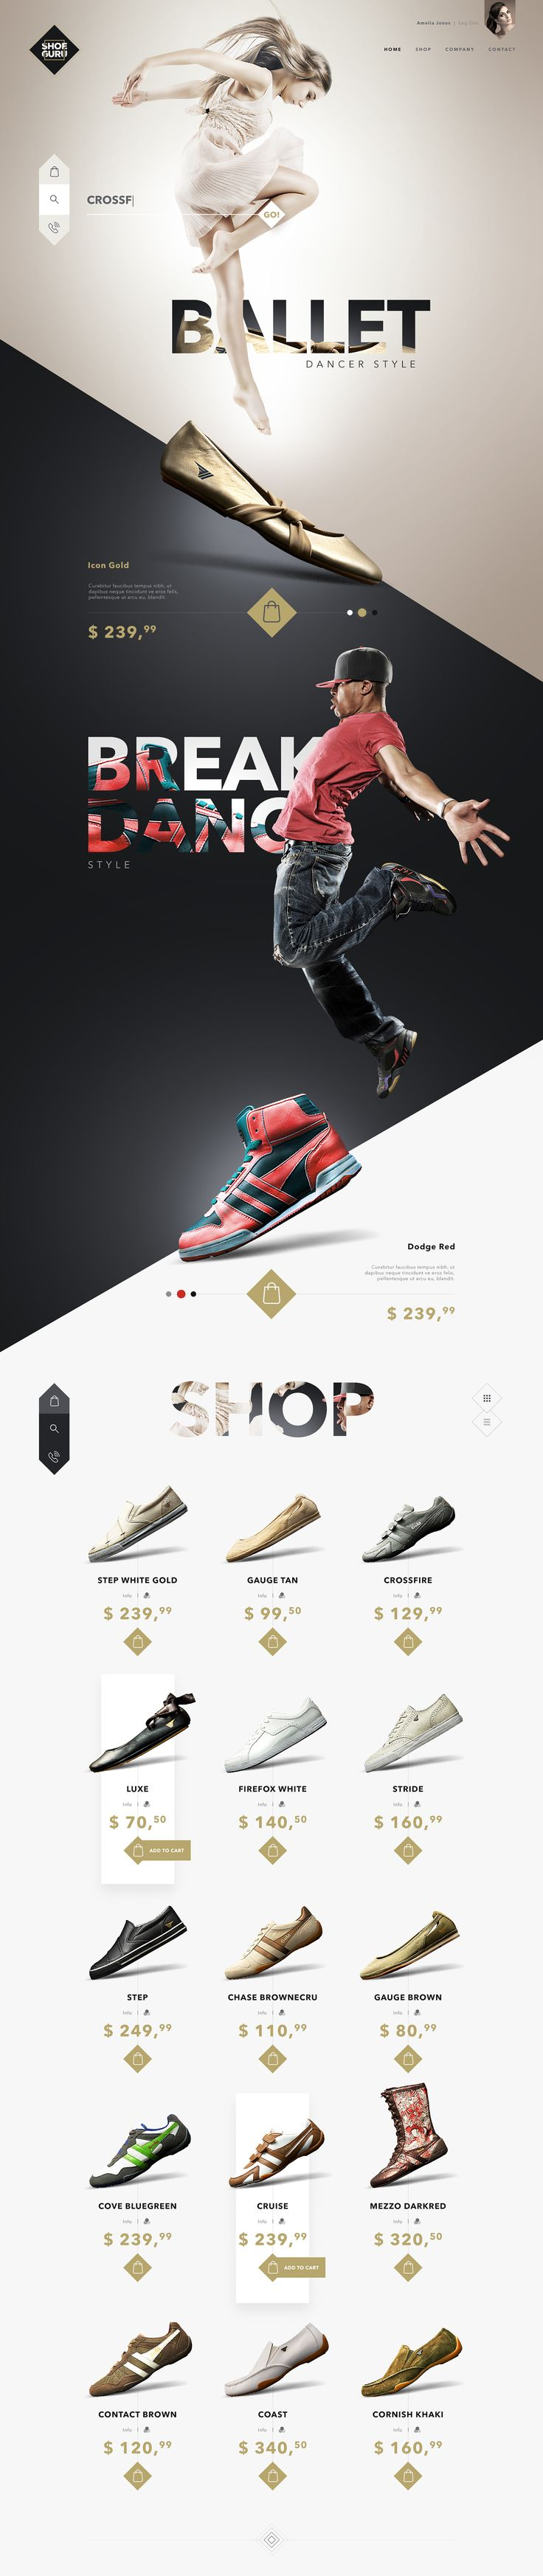 SHOE GURU Shop on Behance